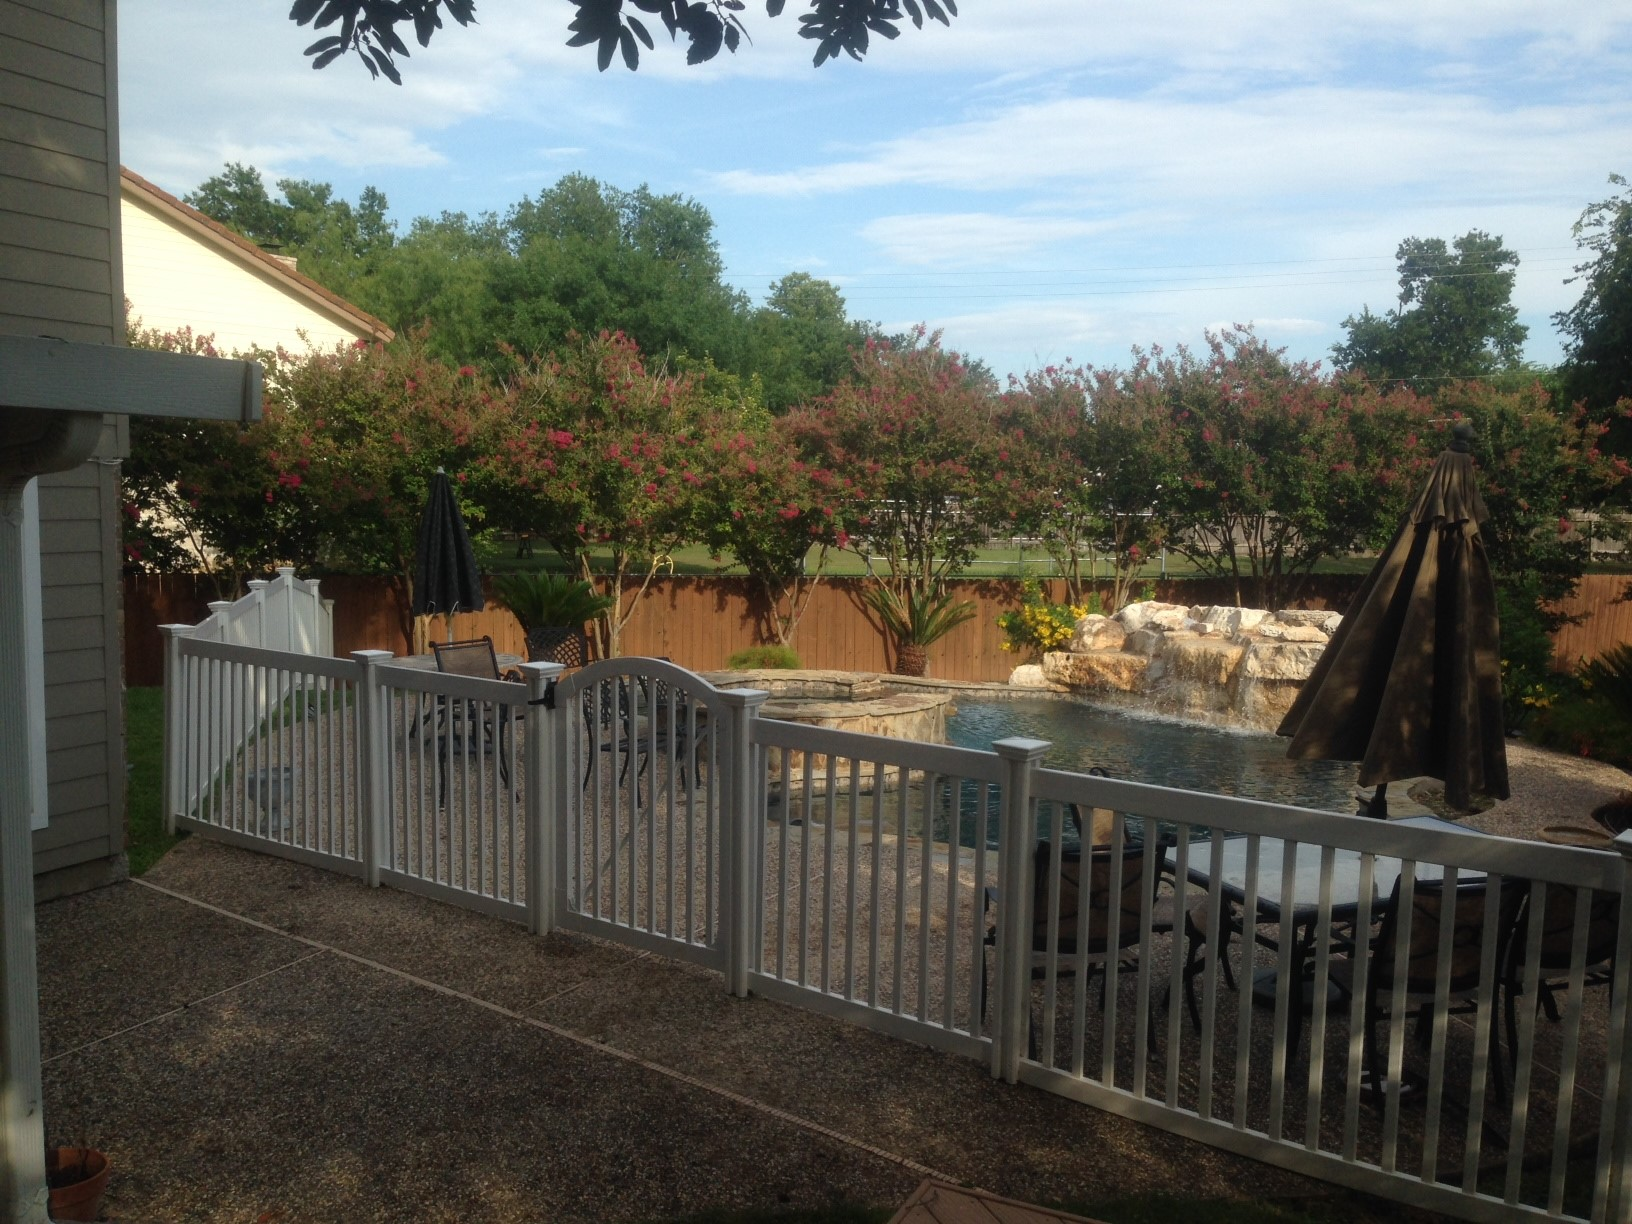 Brian surface mounted his fence to keep his pool safe.